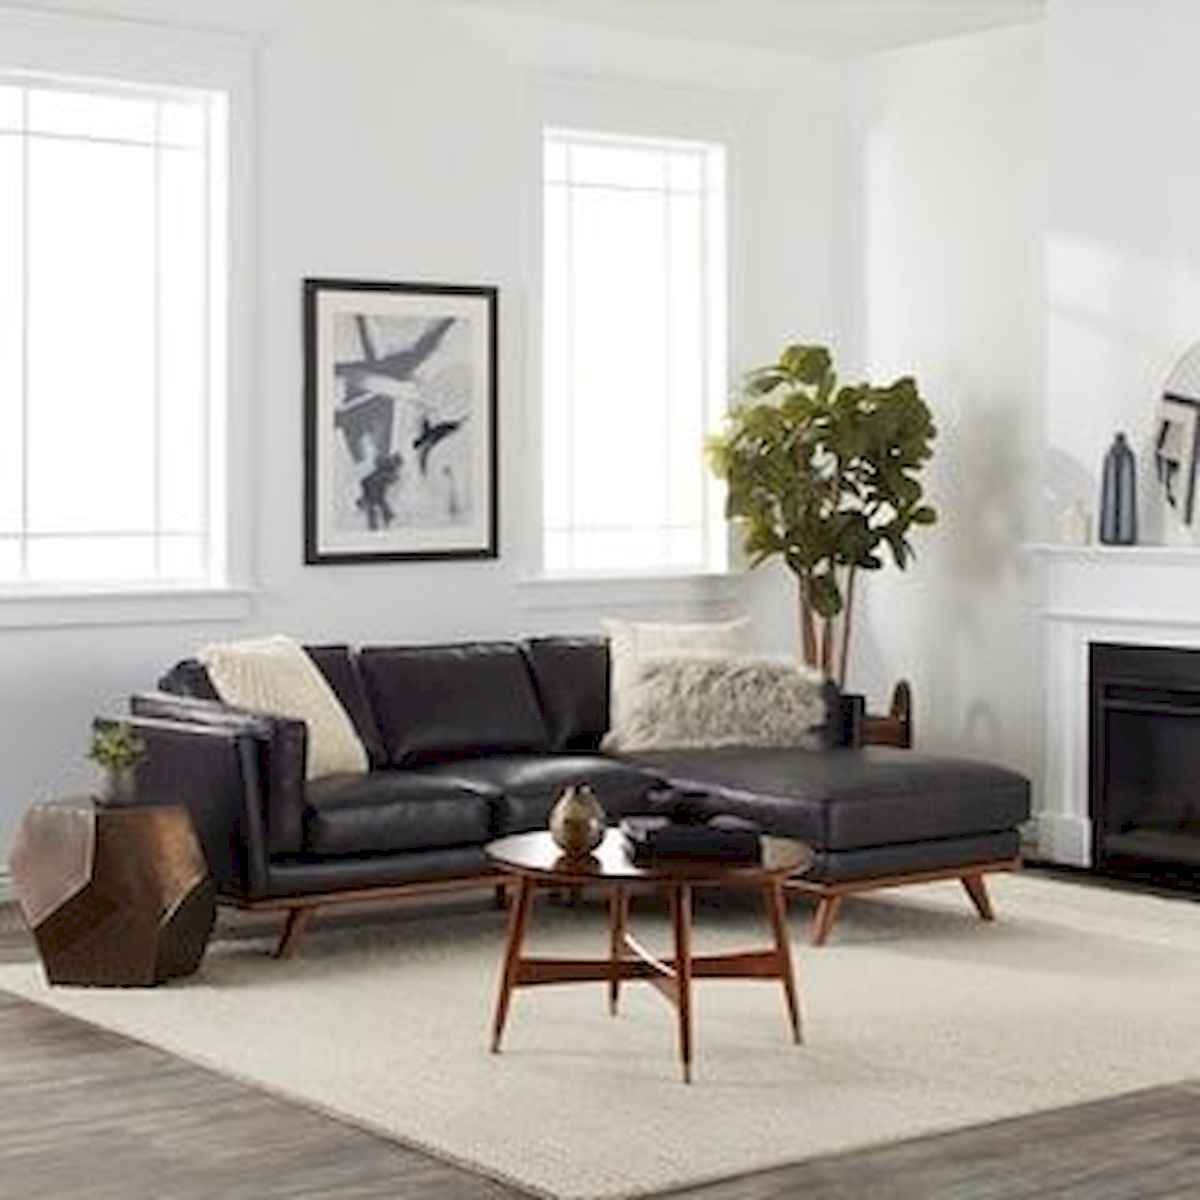 50+ Genius Small Living Room Decor Ideas And Remodel for Your First Apartment (1)